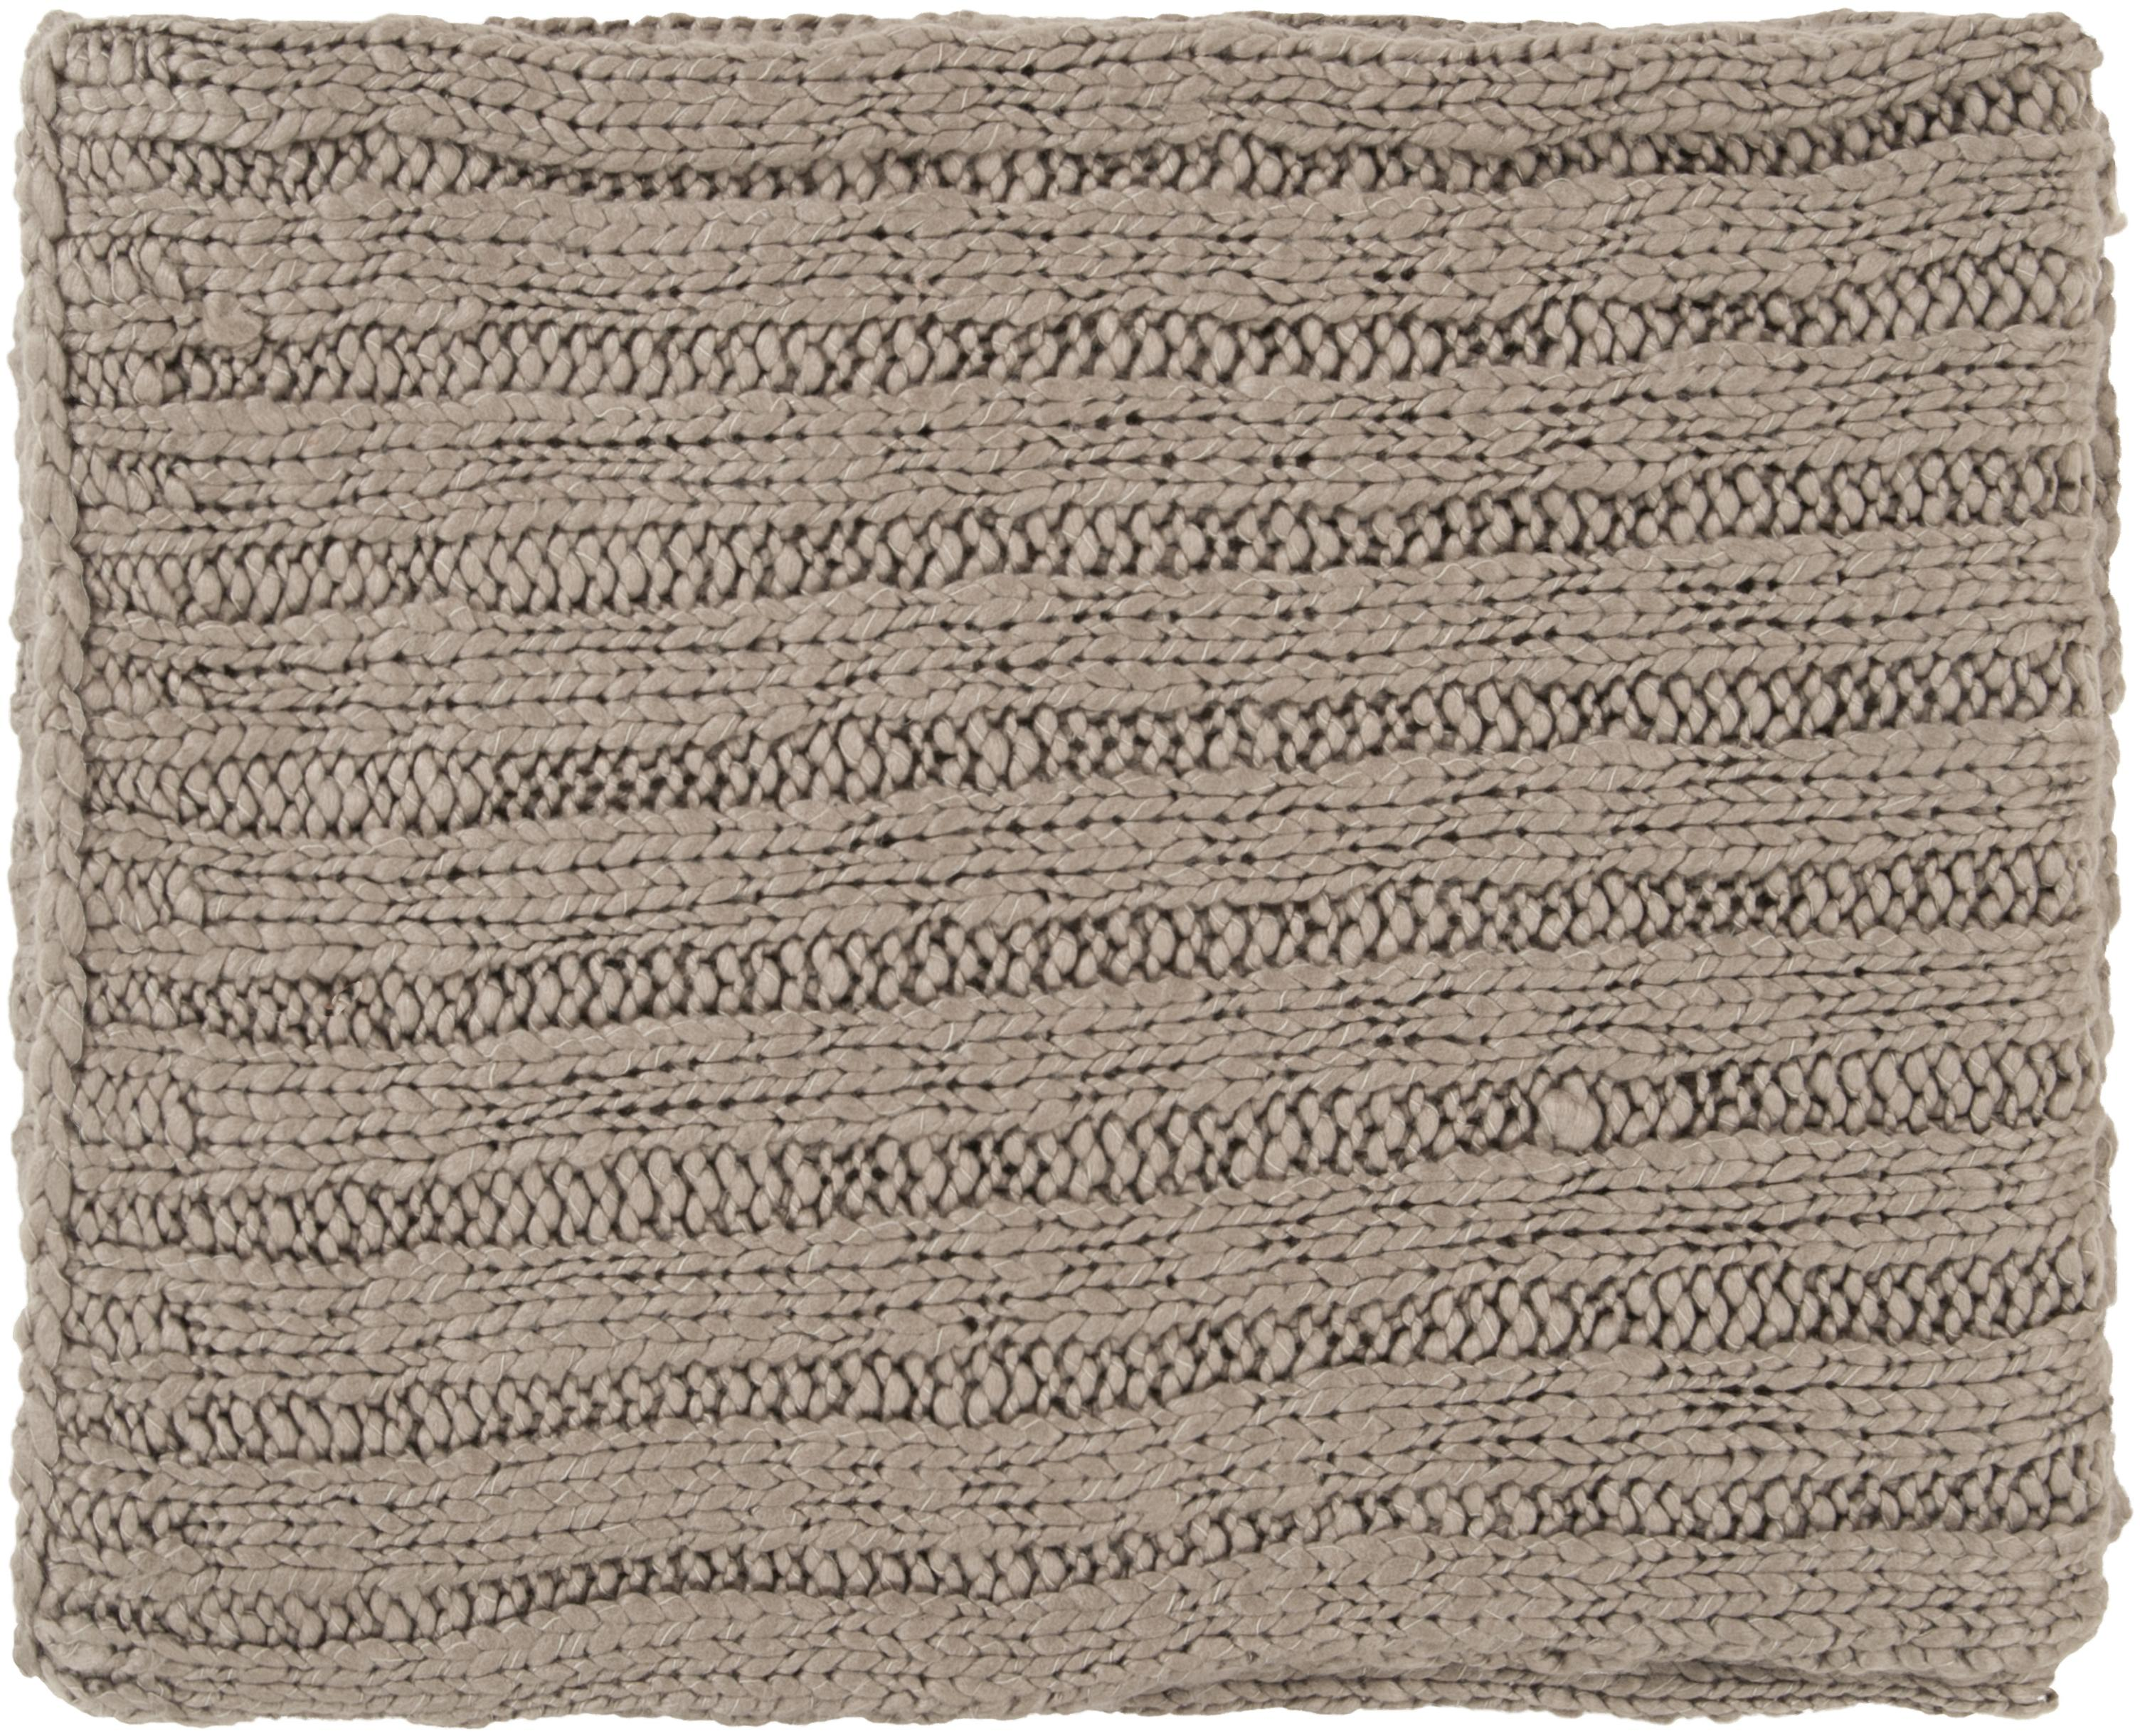 "Surya Throw Blankets Timothy 50"" x 60"" Throw - Item Number: TMT8302-5060"